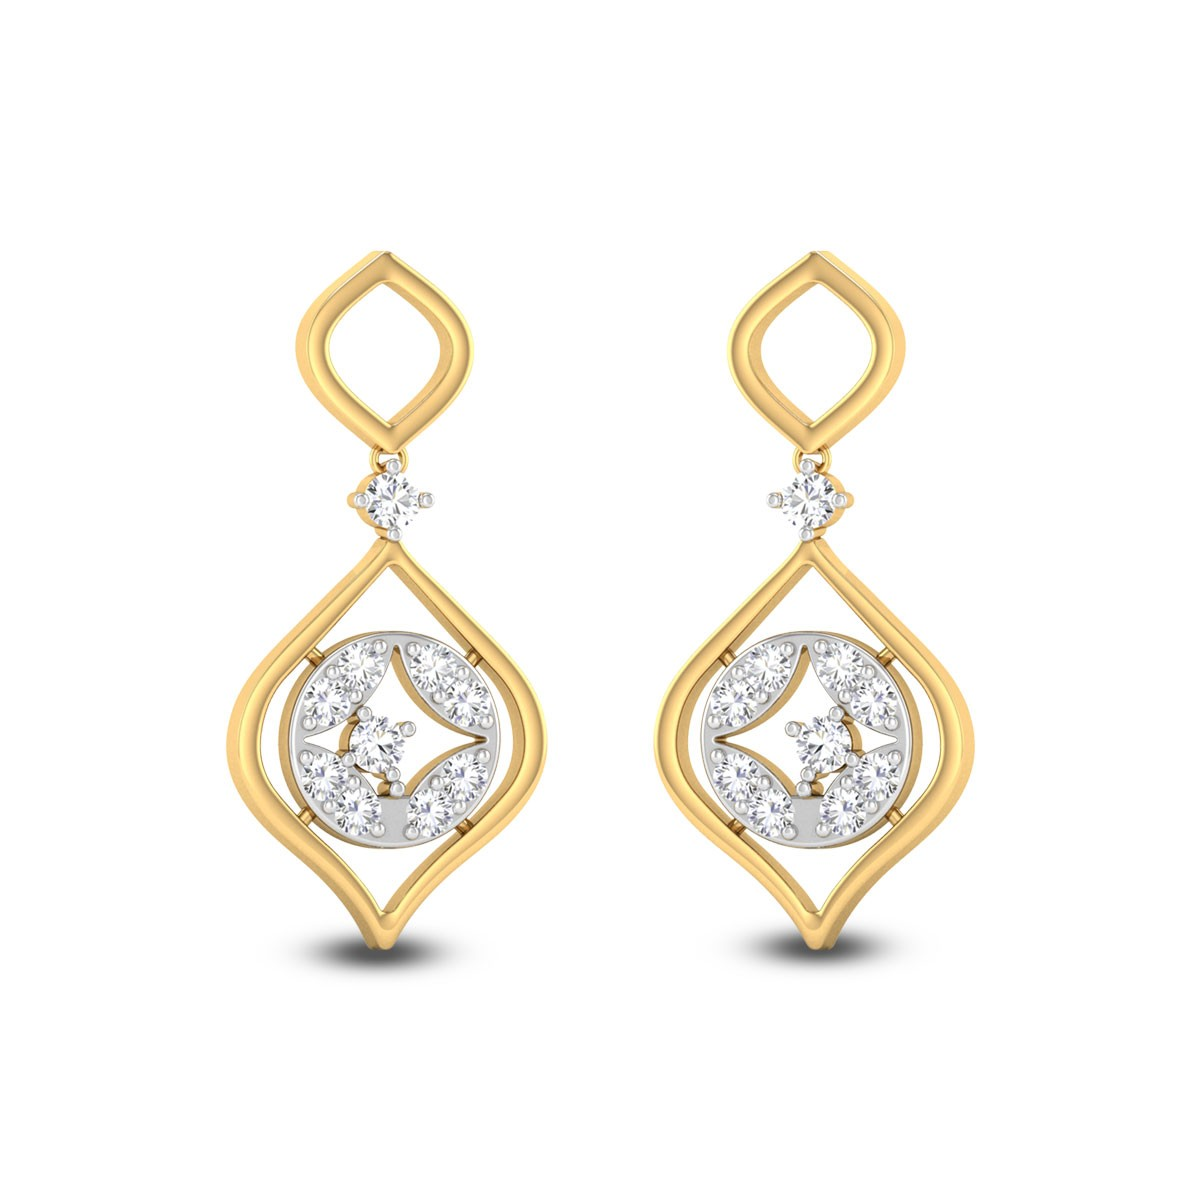 Paige Diamond Earrings